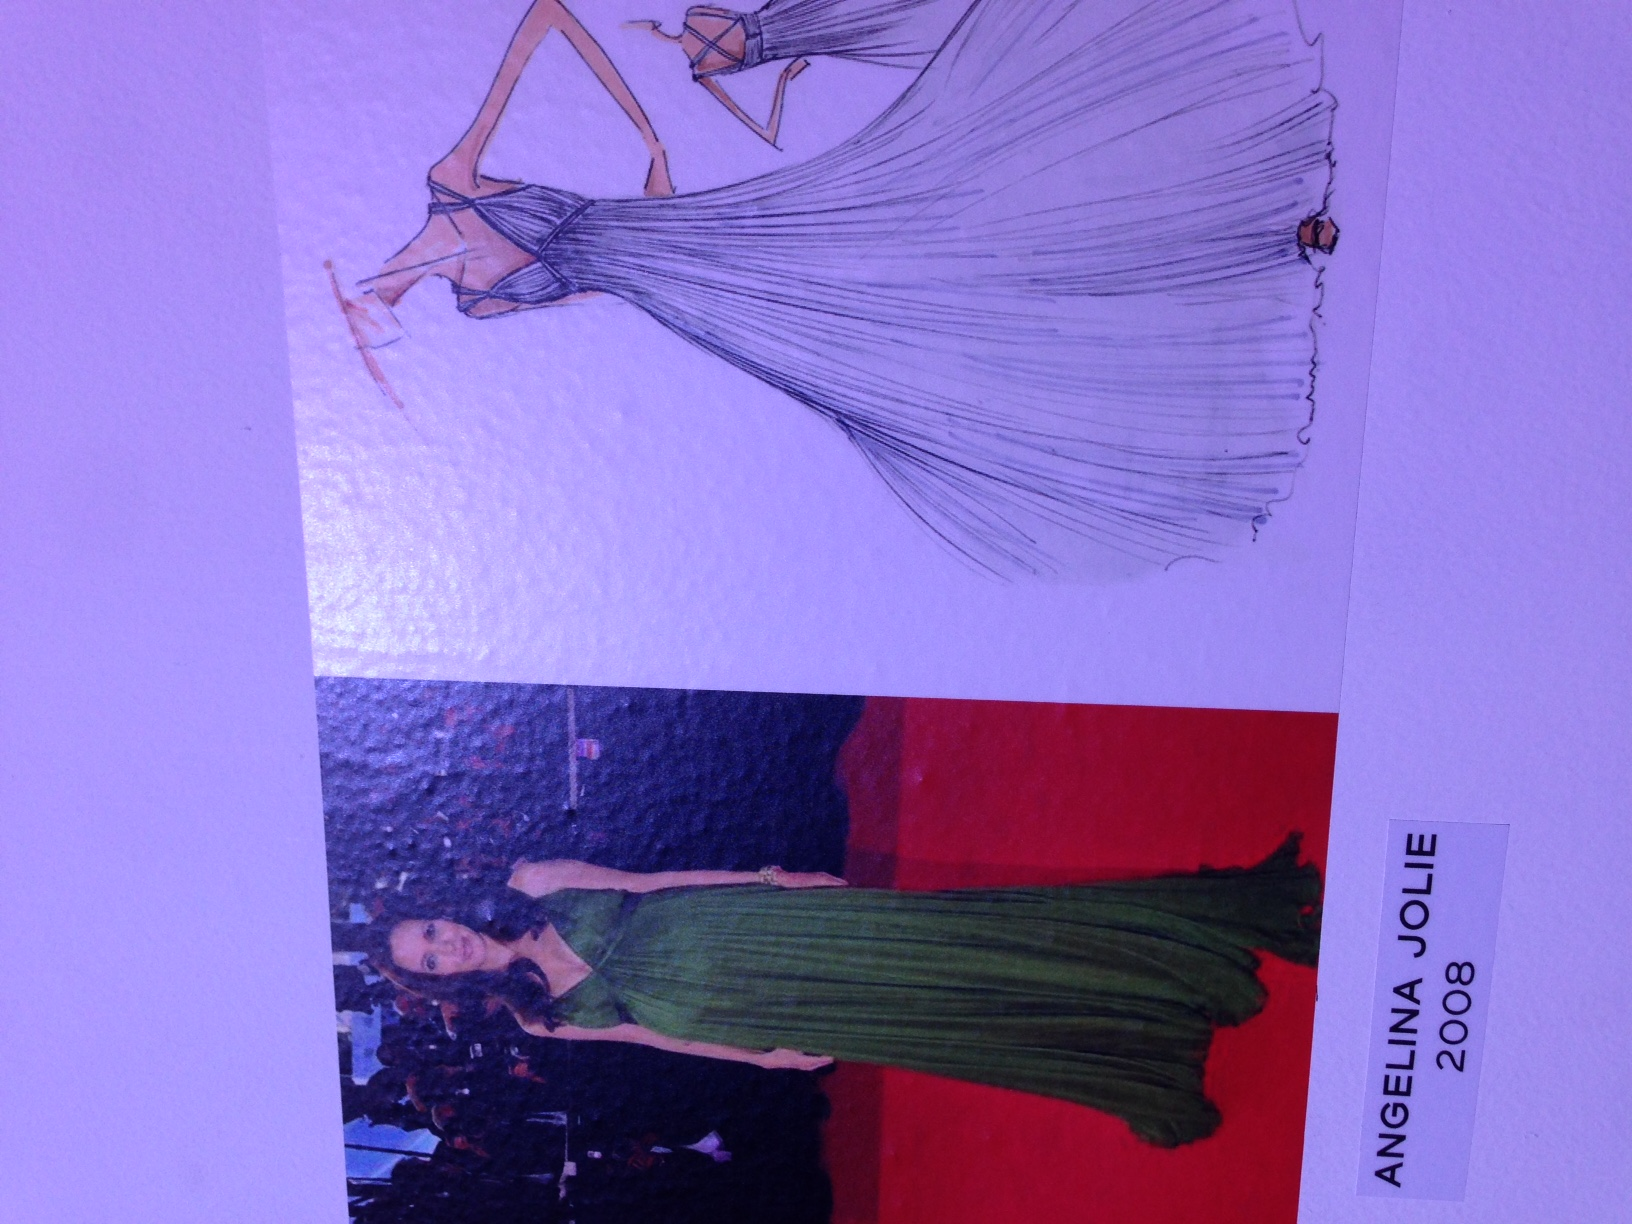 Angelina Jolie wearing the dress on the red carpet and the dress sketch